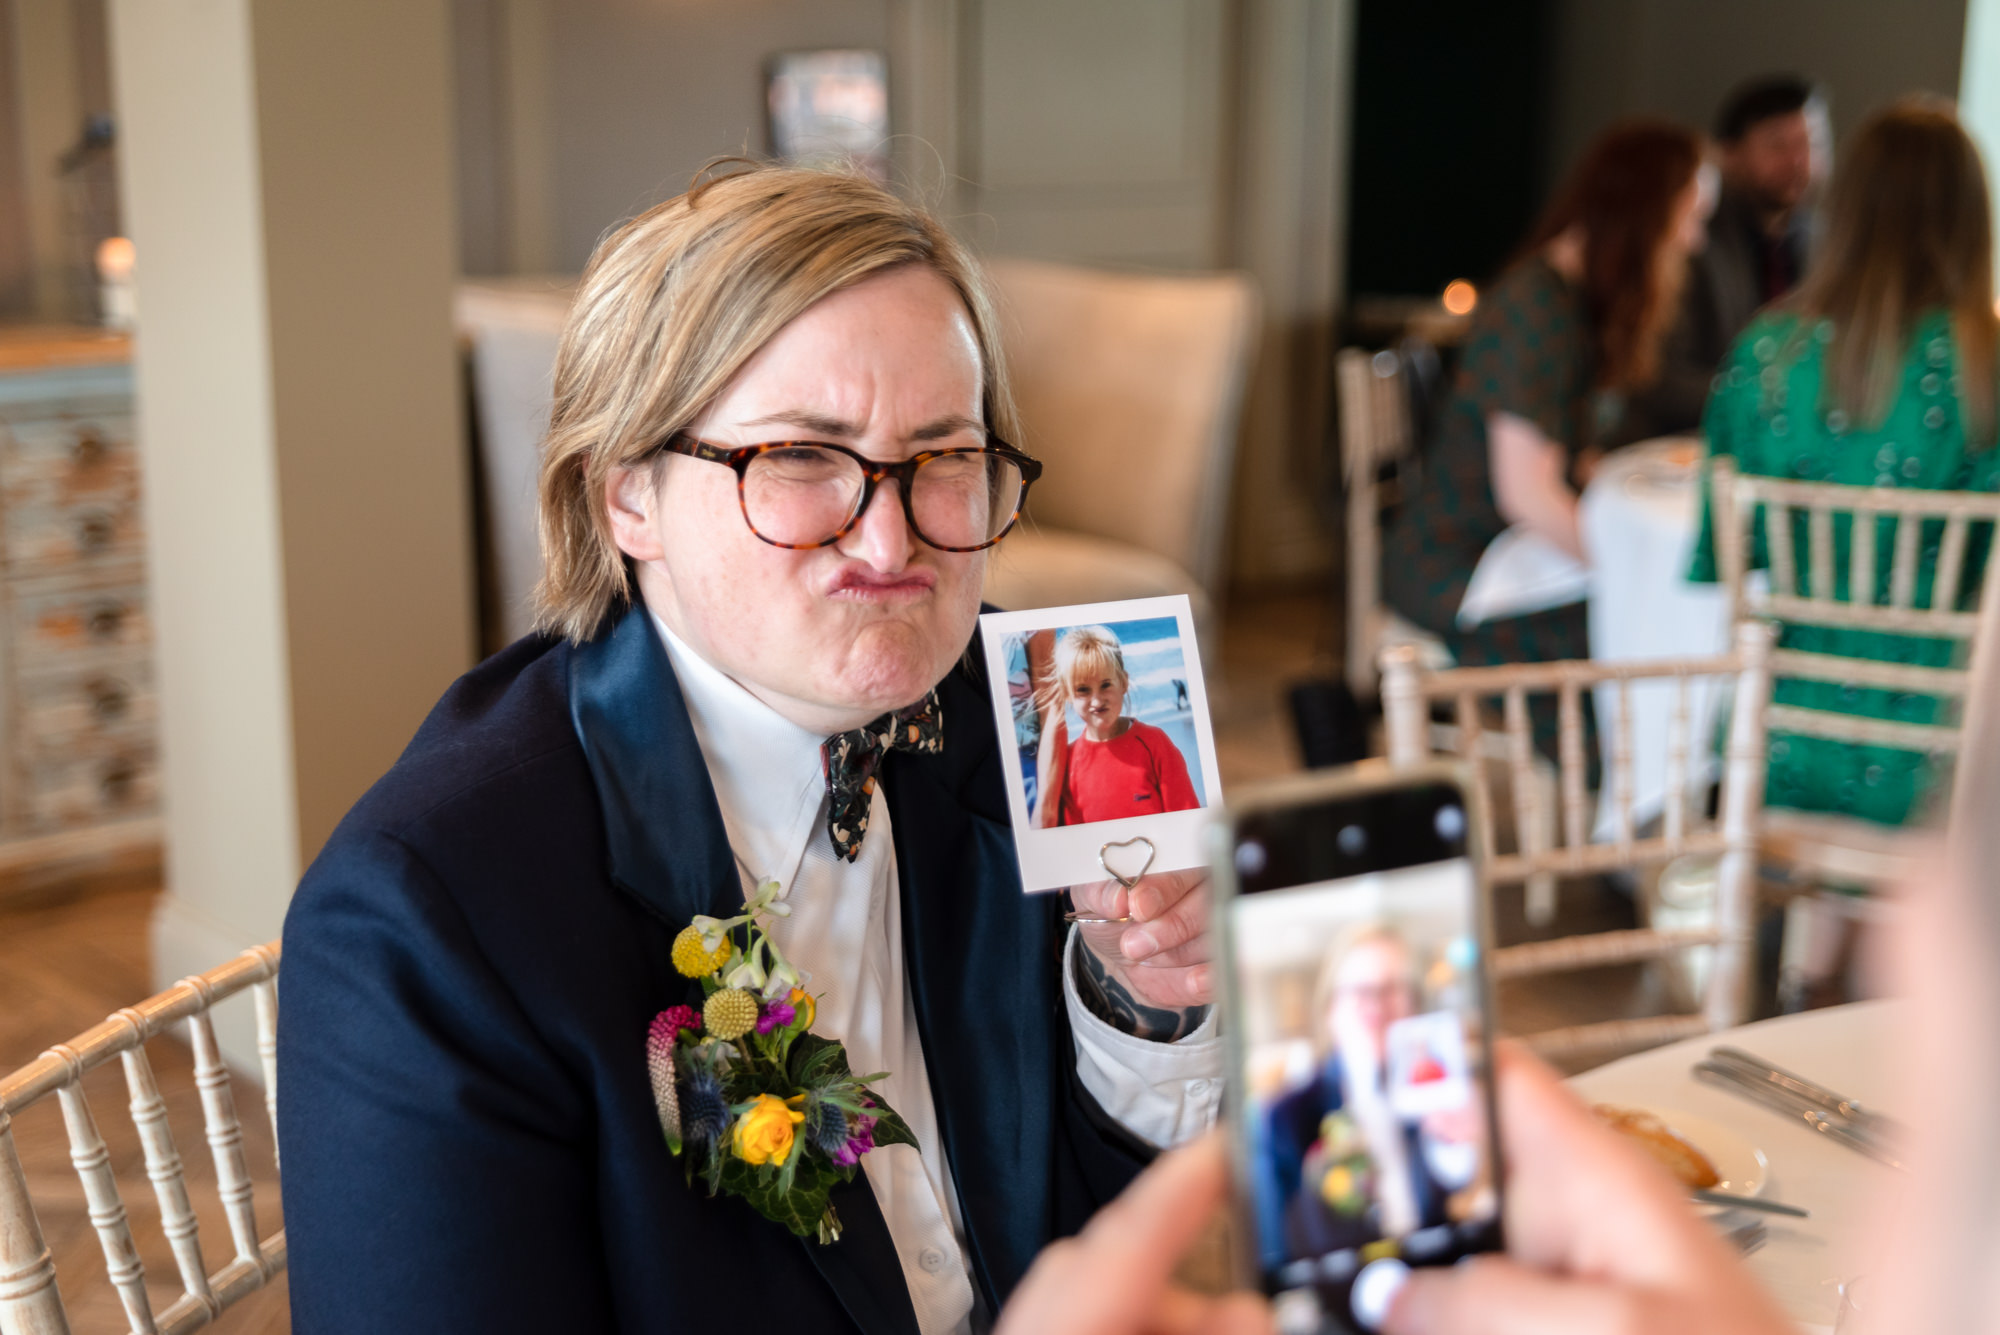 Bride pulling a face while showing a photos of herself